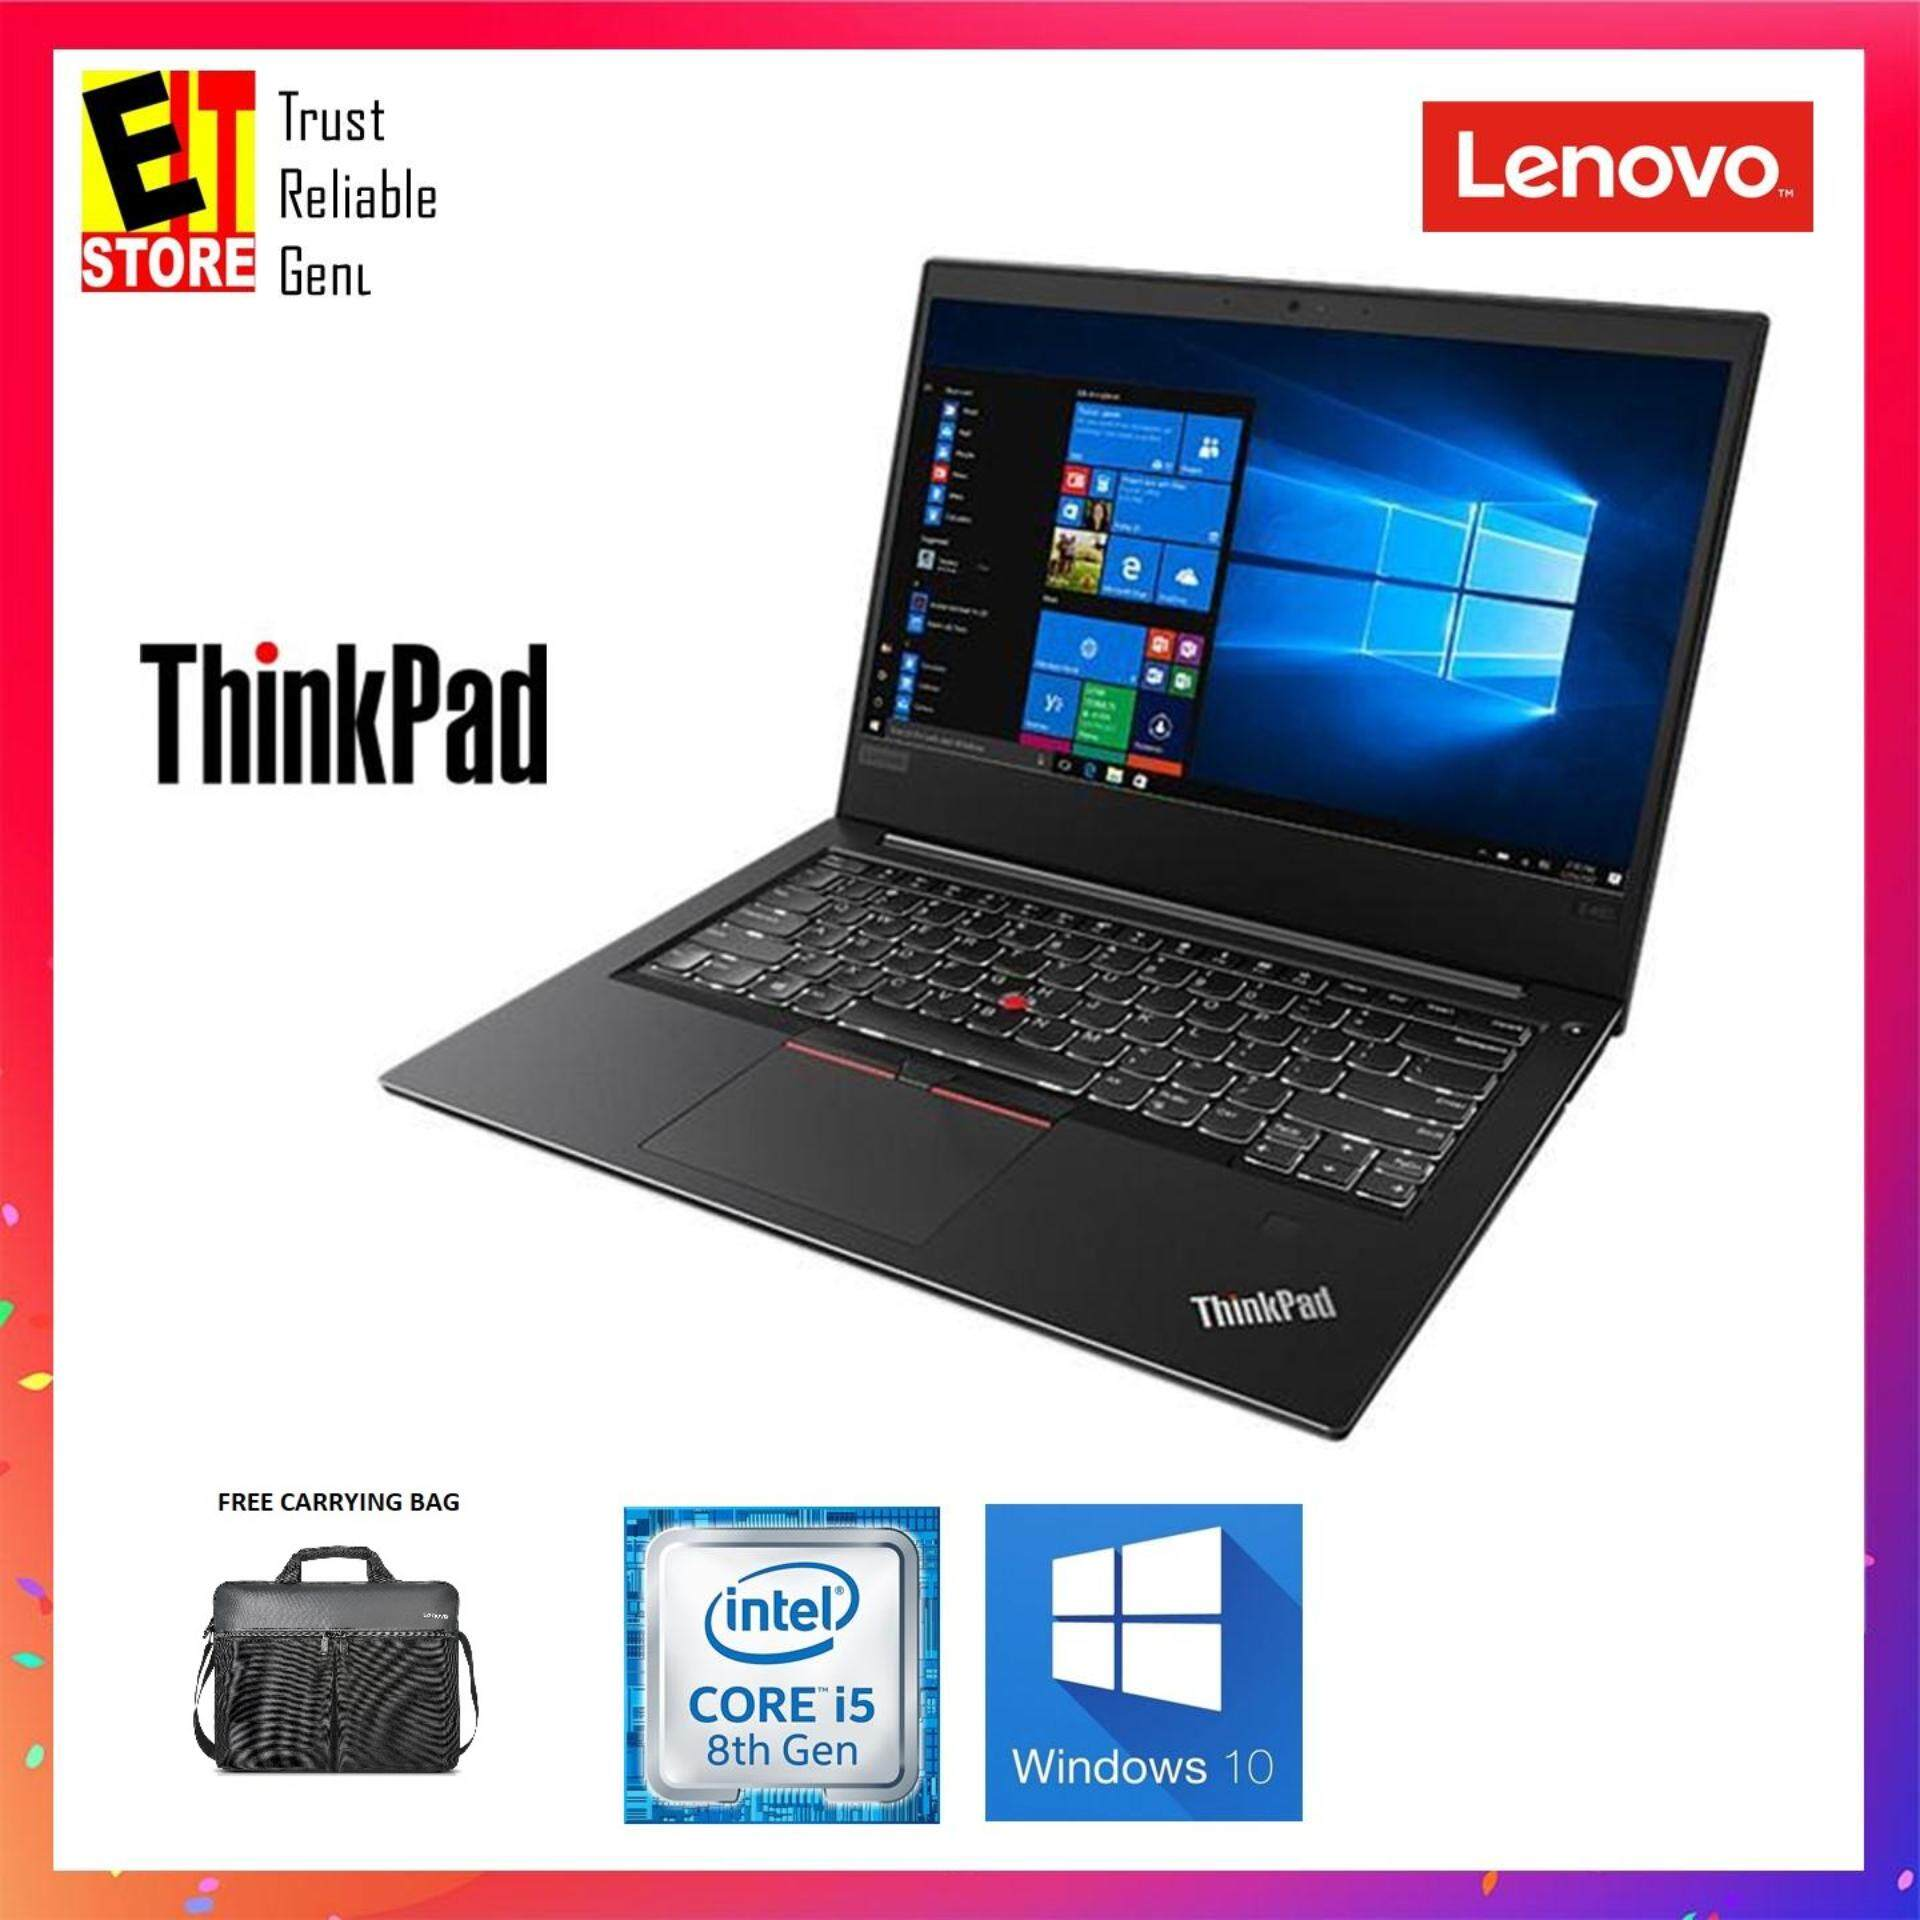 LENOVO THINKPAD E480 20KNS0MM00 (I5-8250U/8GB/1TB/INTEL/14 HD/W10/1YR) +FREE BAG Malaysia